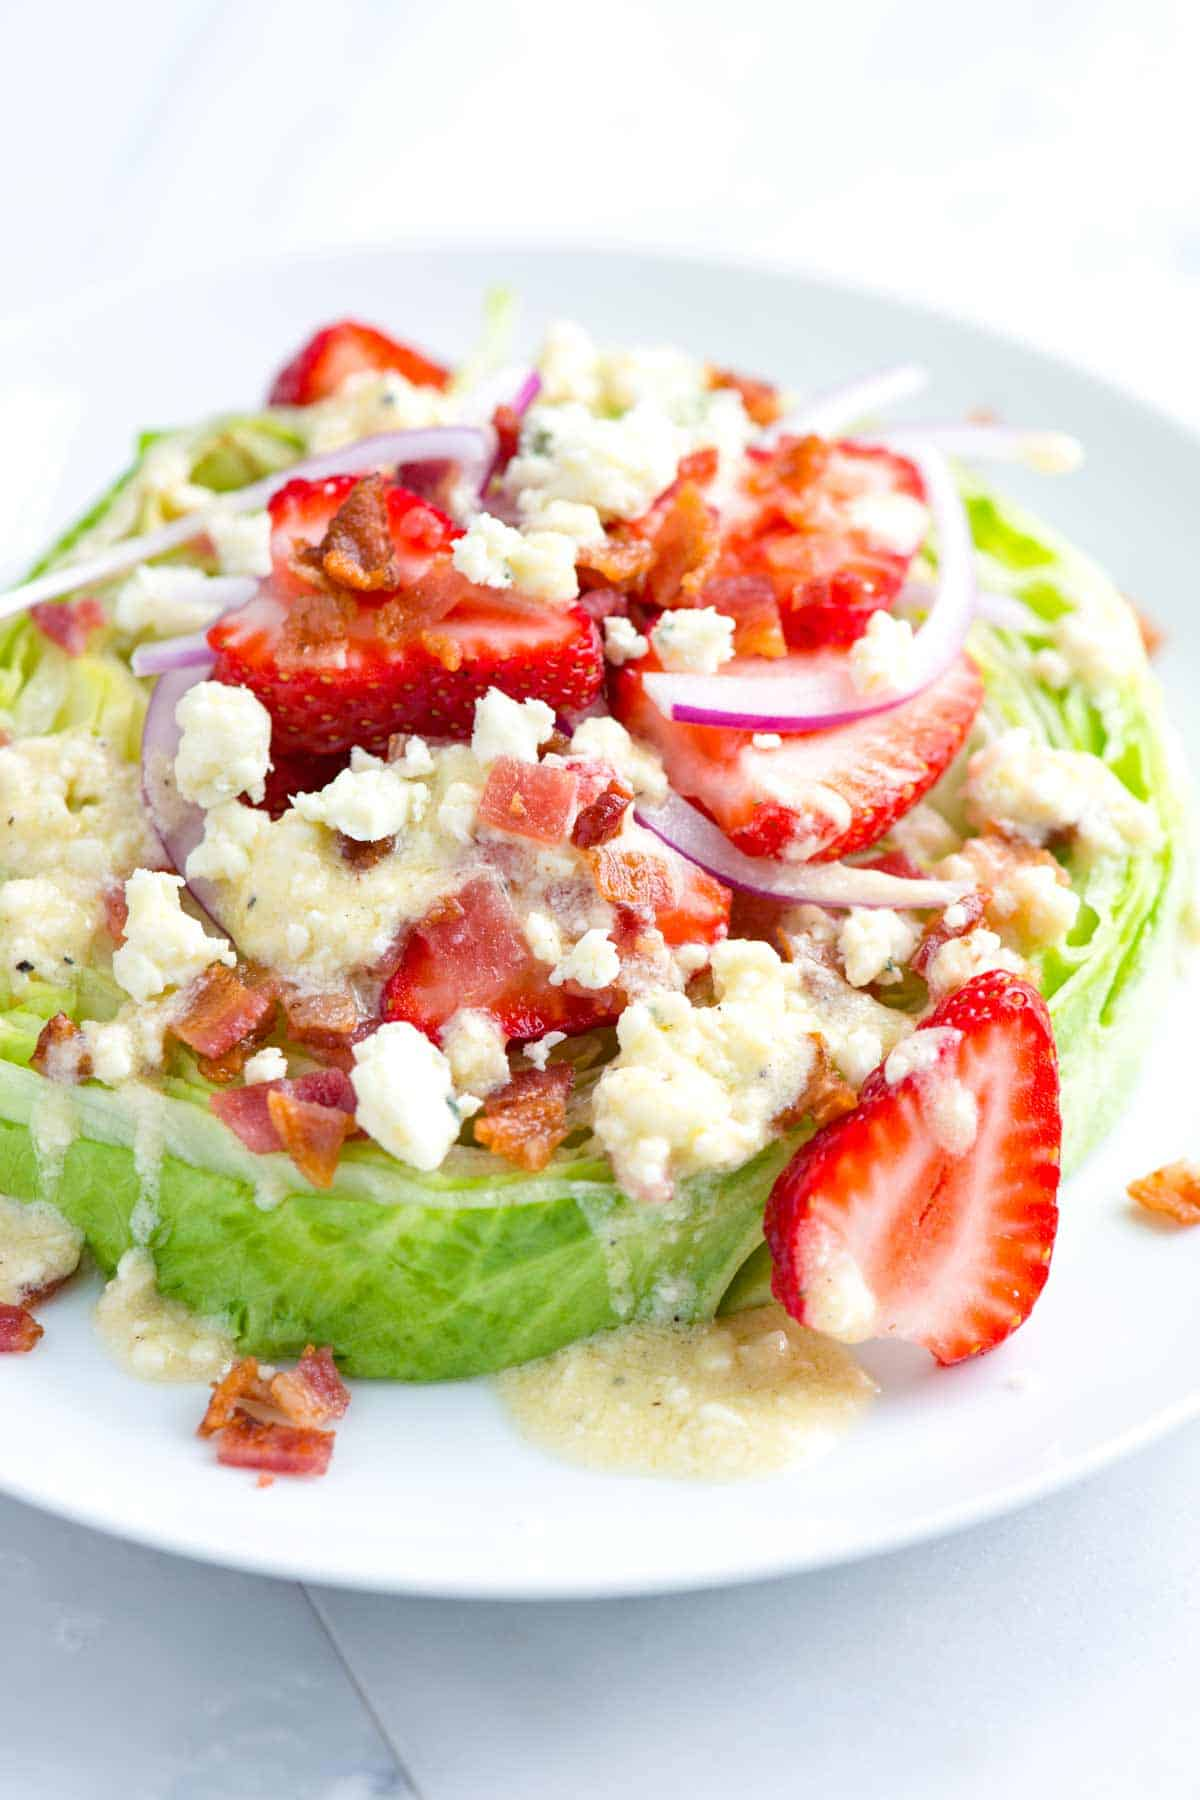 How to Make the Best Strawberry Salad